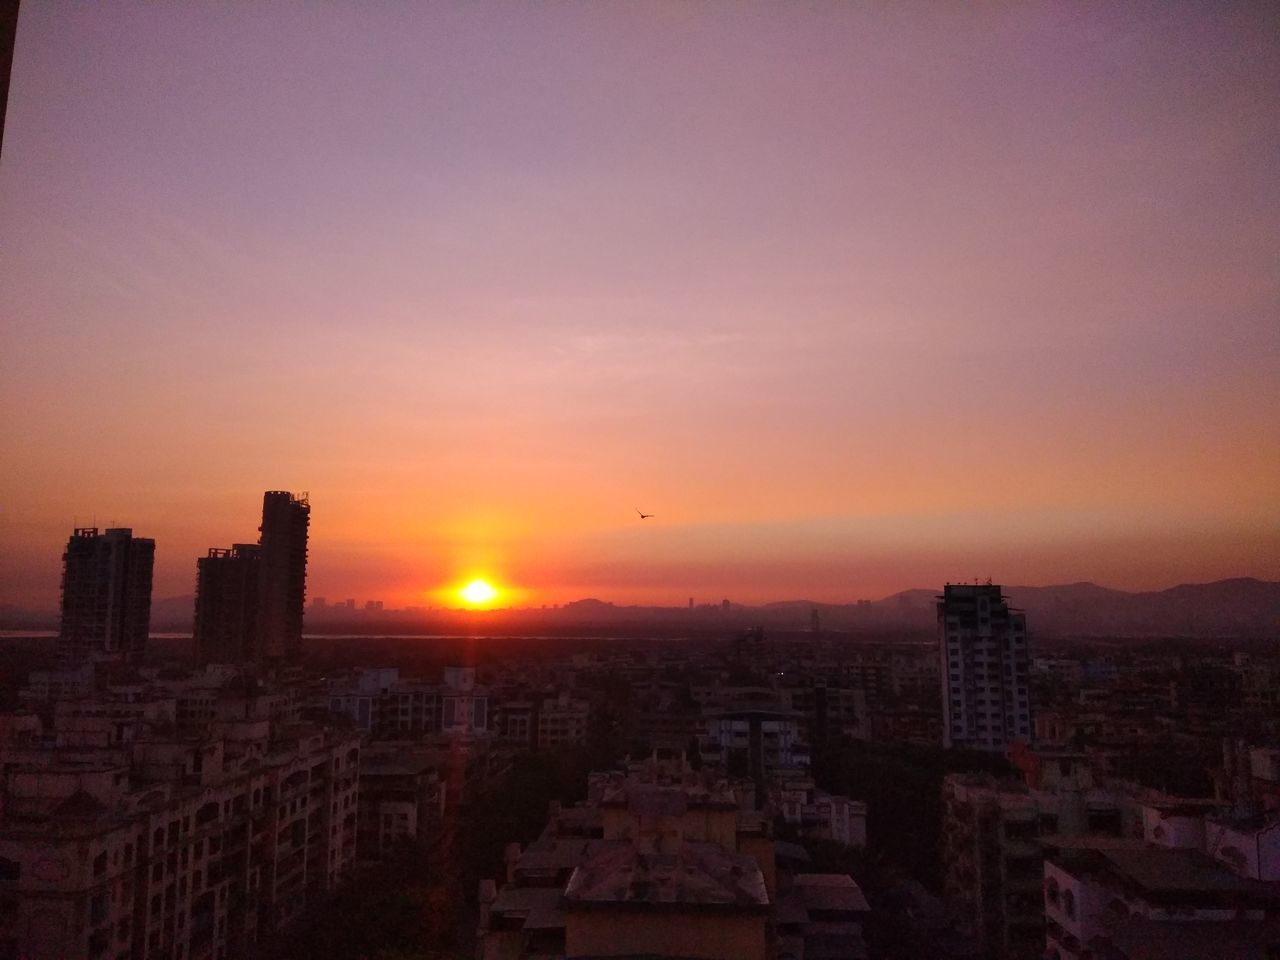 Sunset Cityscape City Urban Skyline High Angle View Sky Romantic Sky No People Peach Sky No Filter NoEdits  Calm Sky Awesome_sky City Life Cityscape Soothing To The Soul